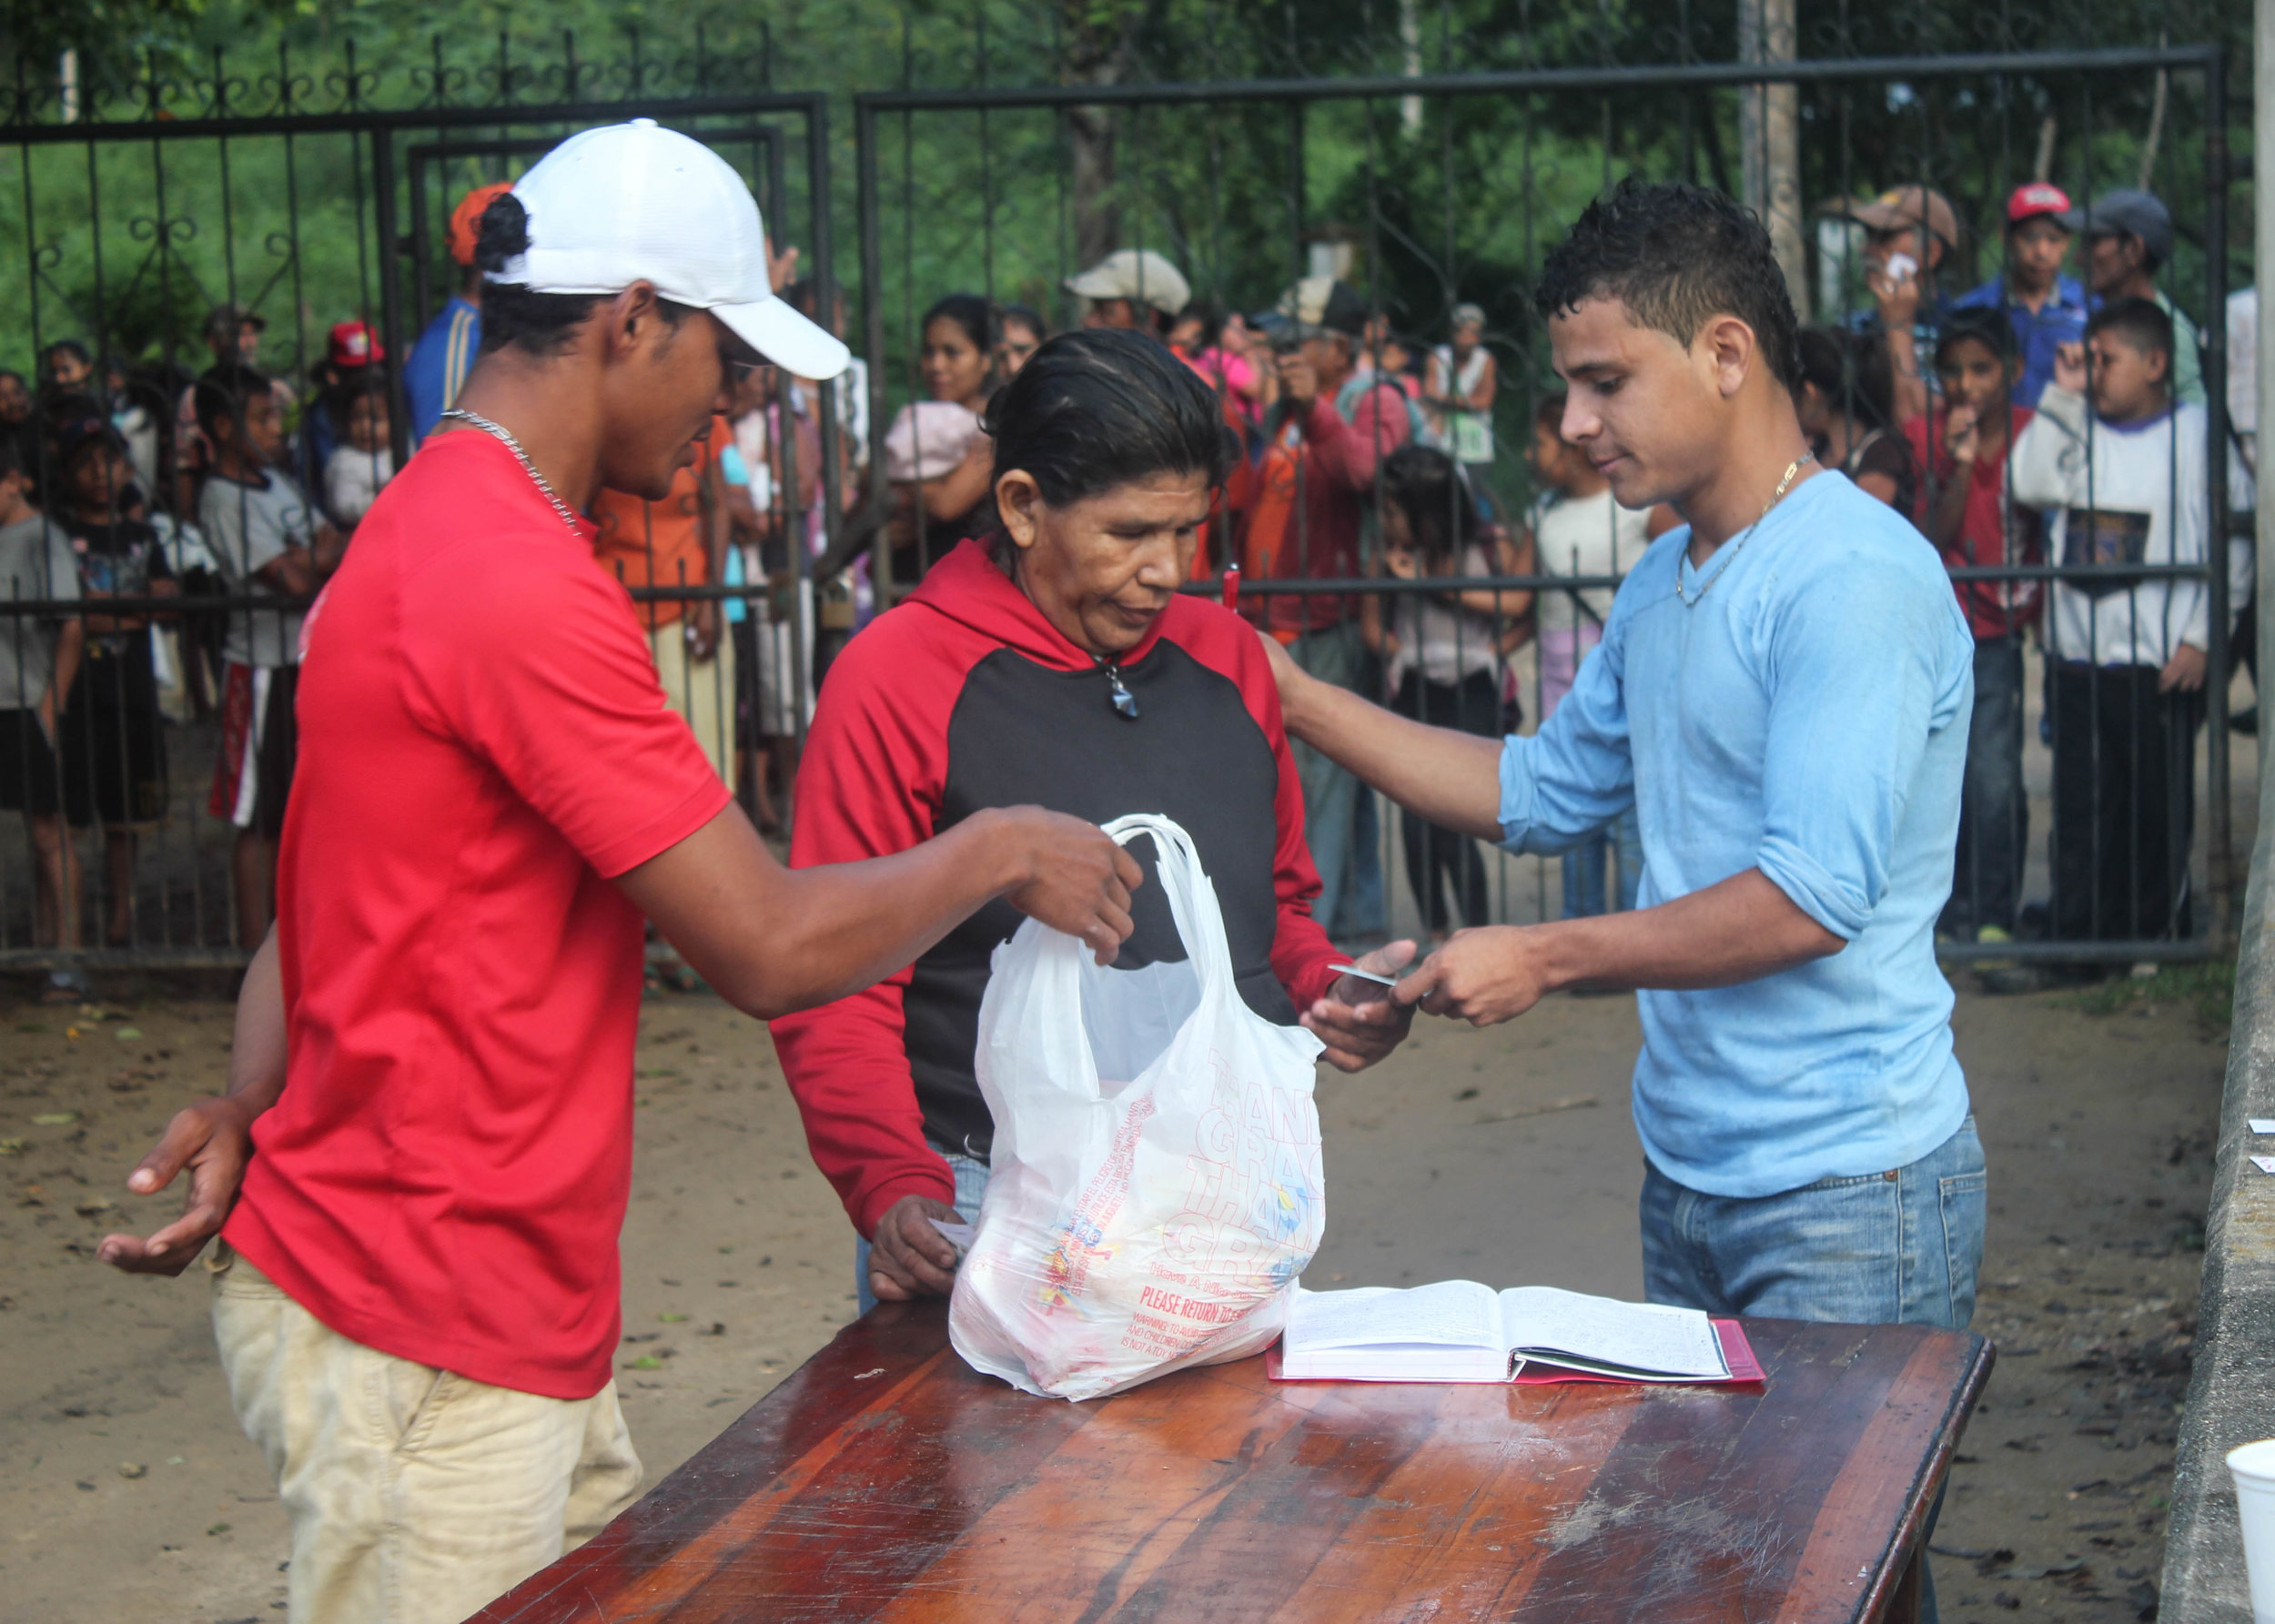 Each year on Christmas Day, the 'jovenes' organize a community service project where they give food to families in the area to ensure that each family enjoys a Christmas dinner.